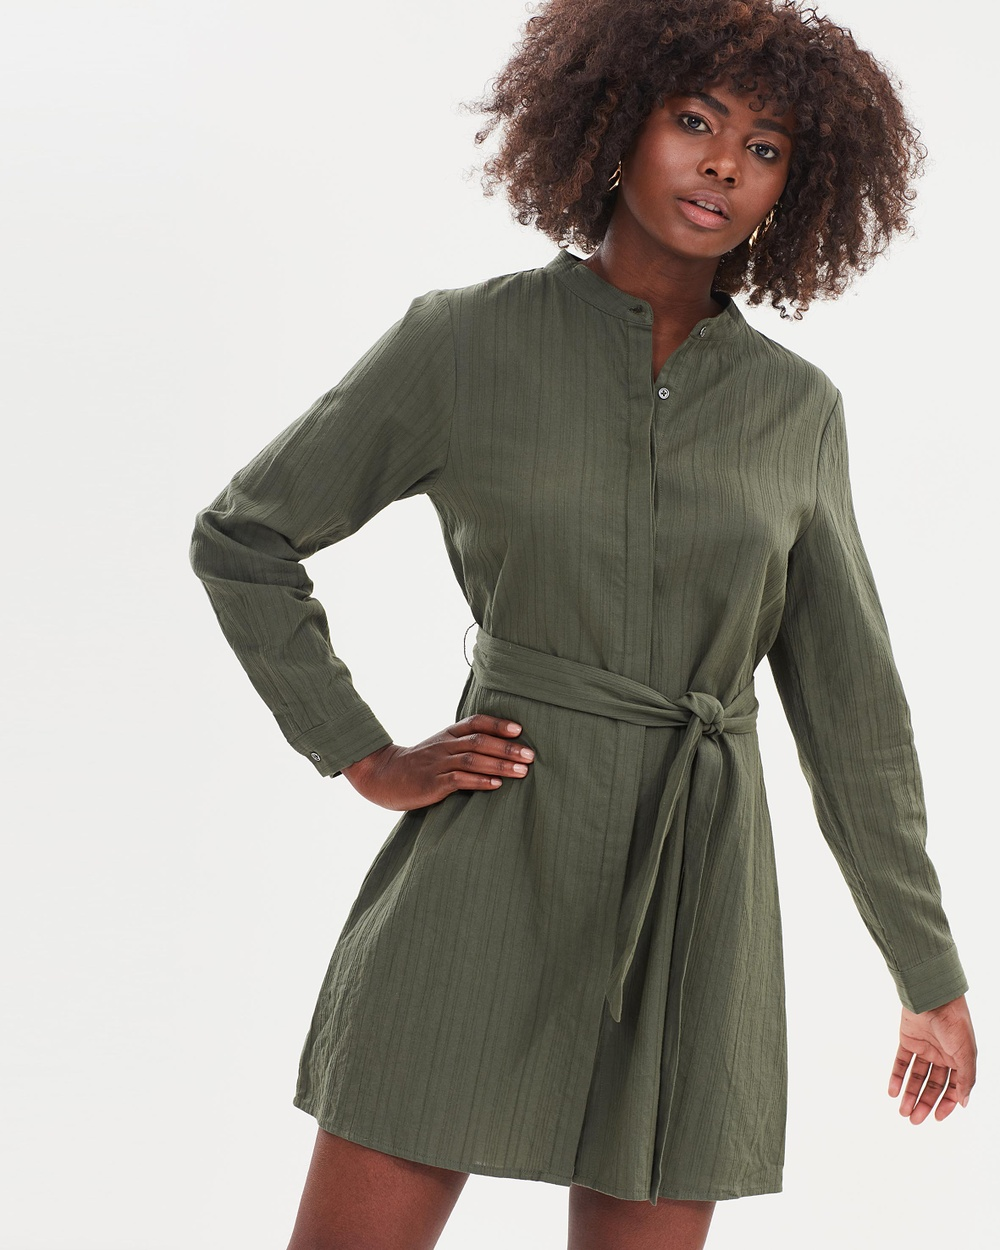 Atmos & Here ICONIC EXCLUSIVE Hazel Cotton Shirt Dress Dresses Khaki ICONIC EXCLUSIVE Hazel Cotton Shirt Dress